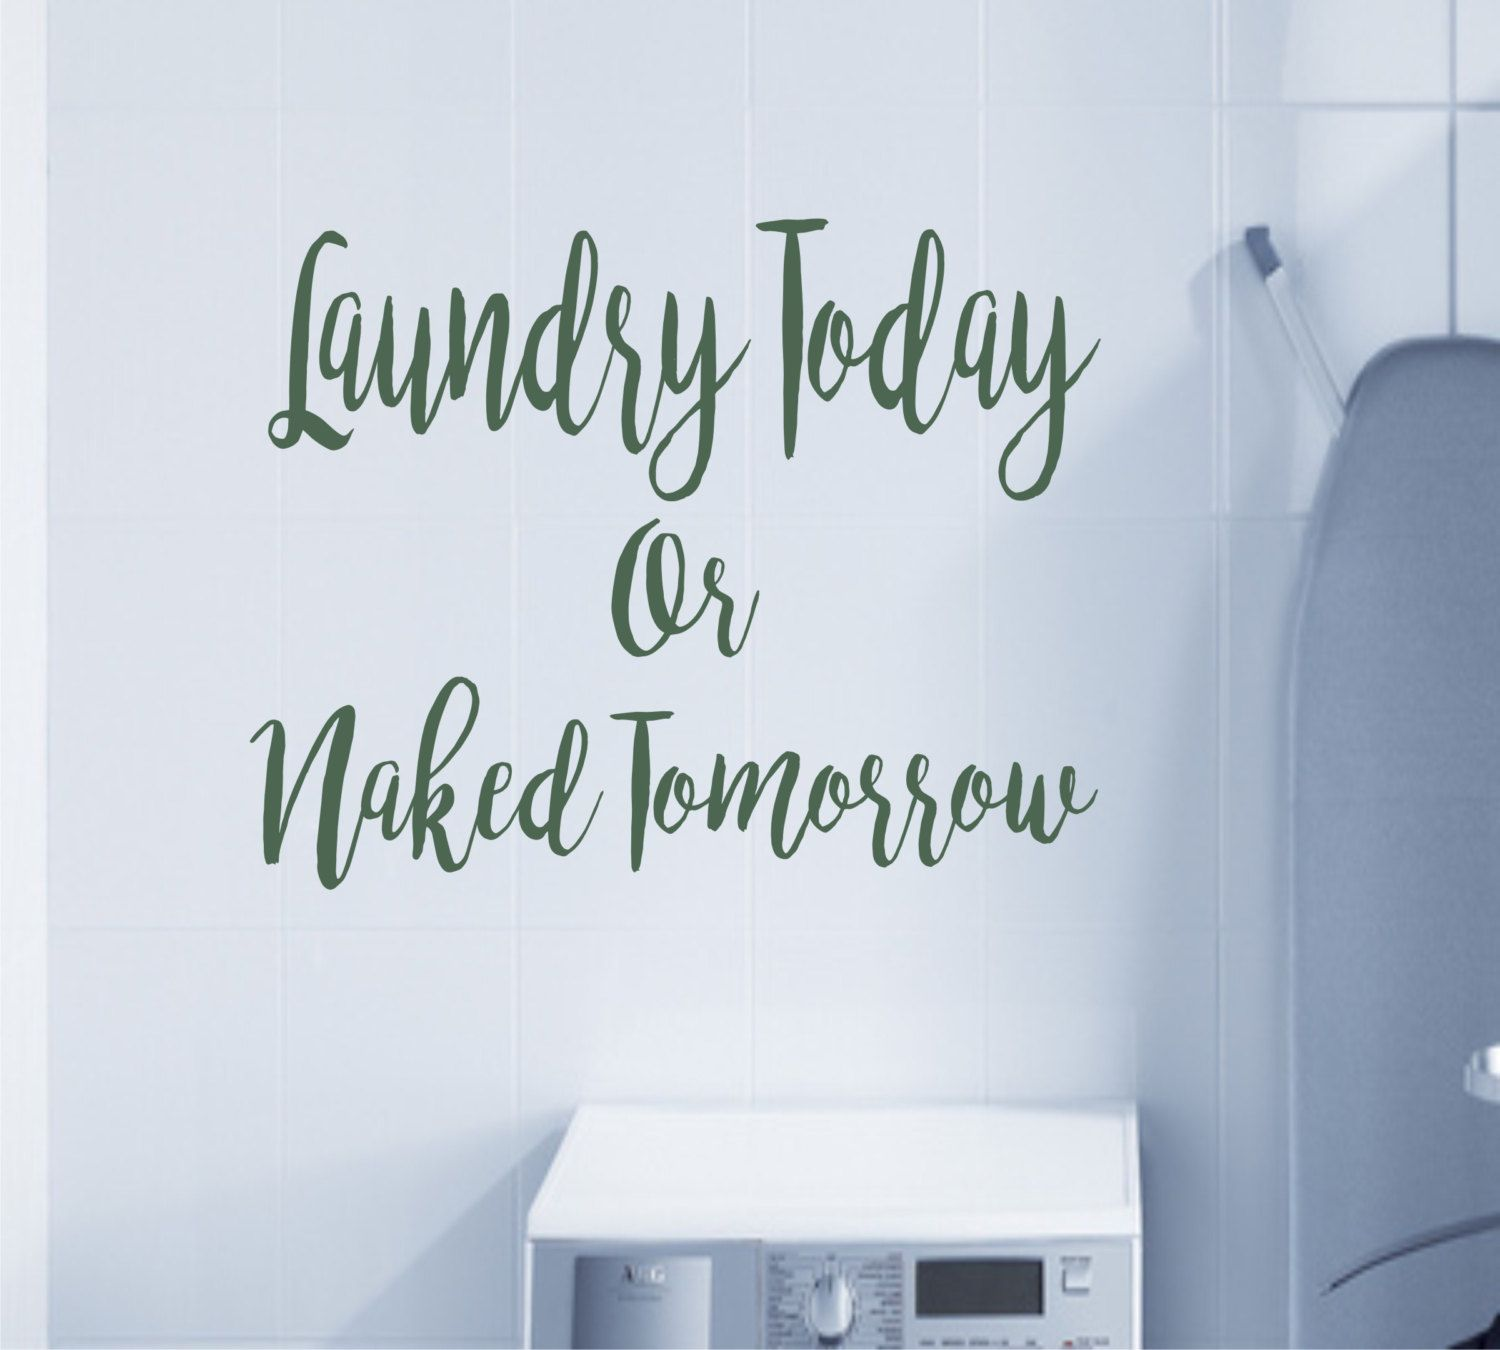 Laundry Decal Wall Decor Impressive Laundry Today Or Naked Tomorrow  Laundry Room Decal  Laundry Design Decoration